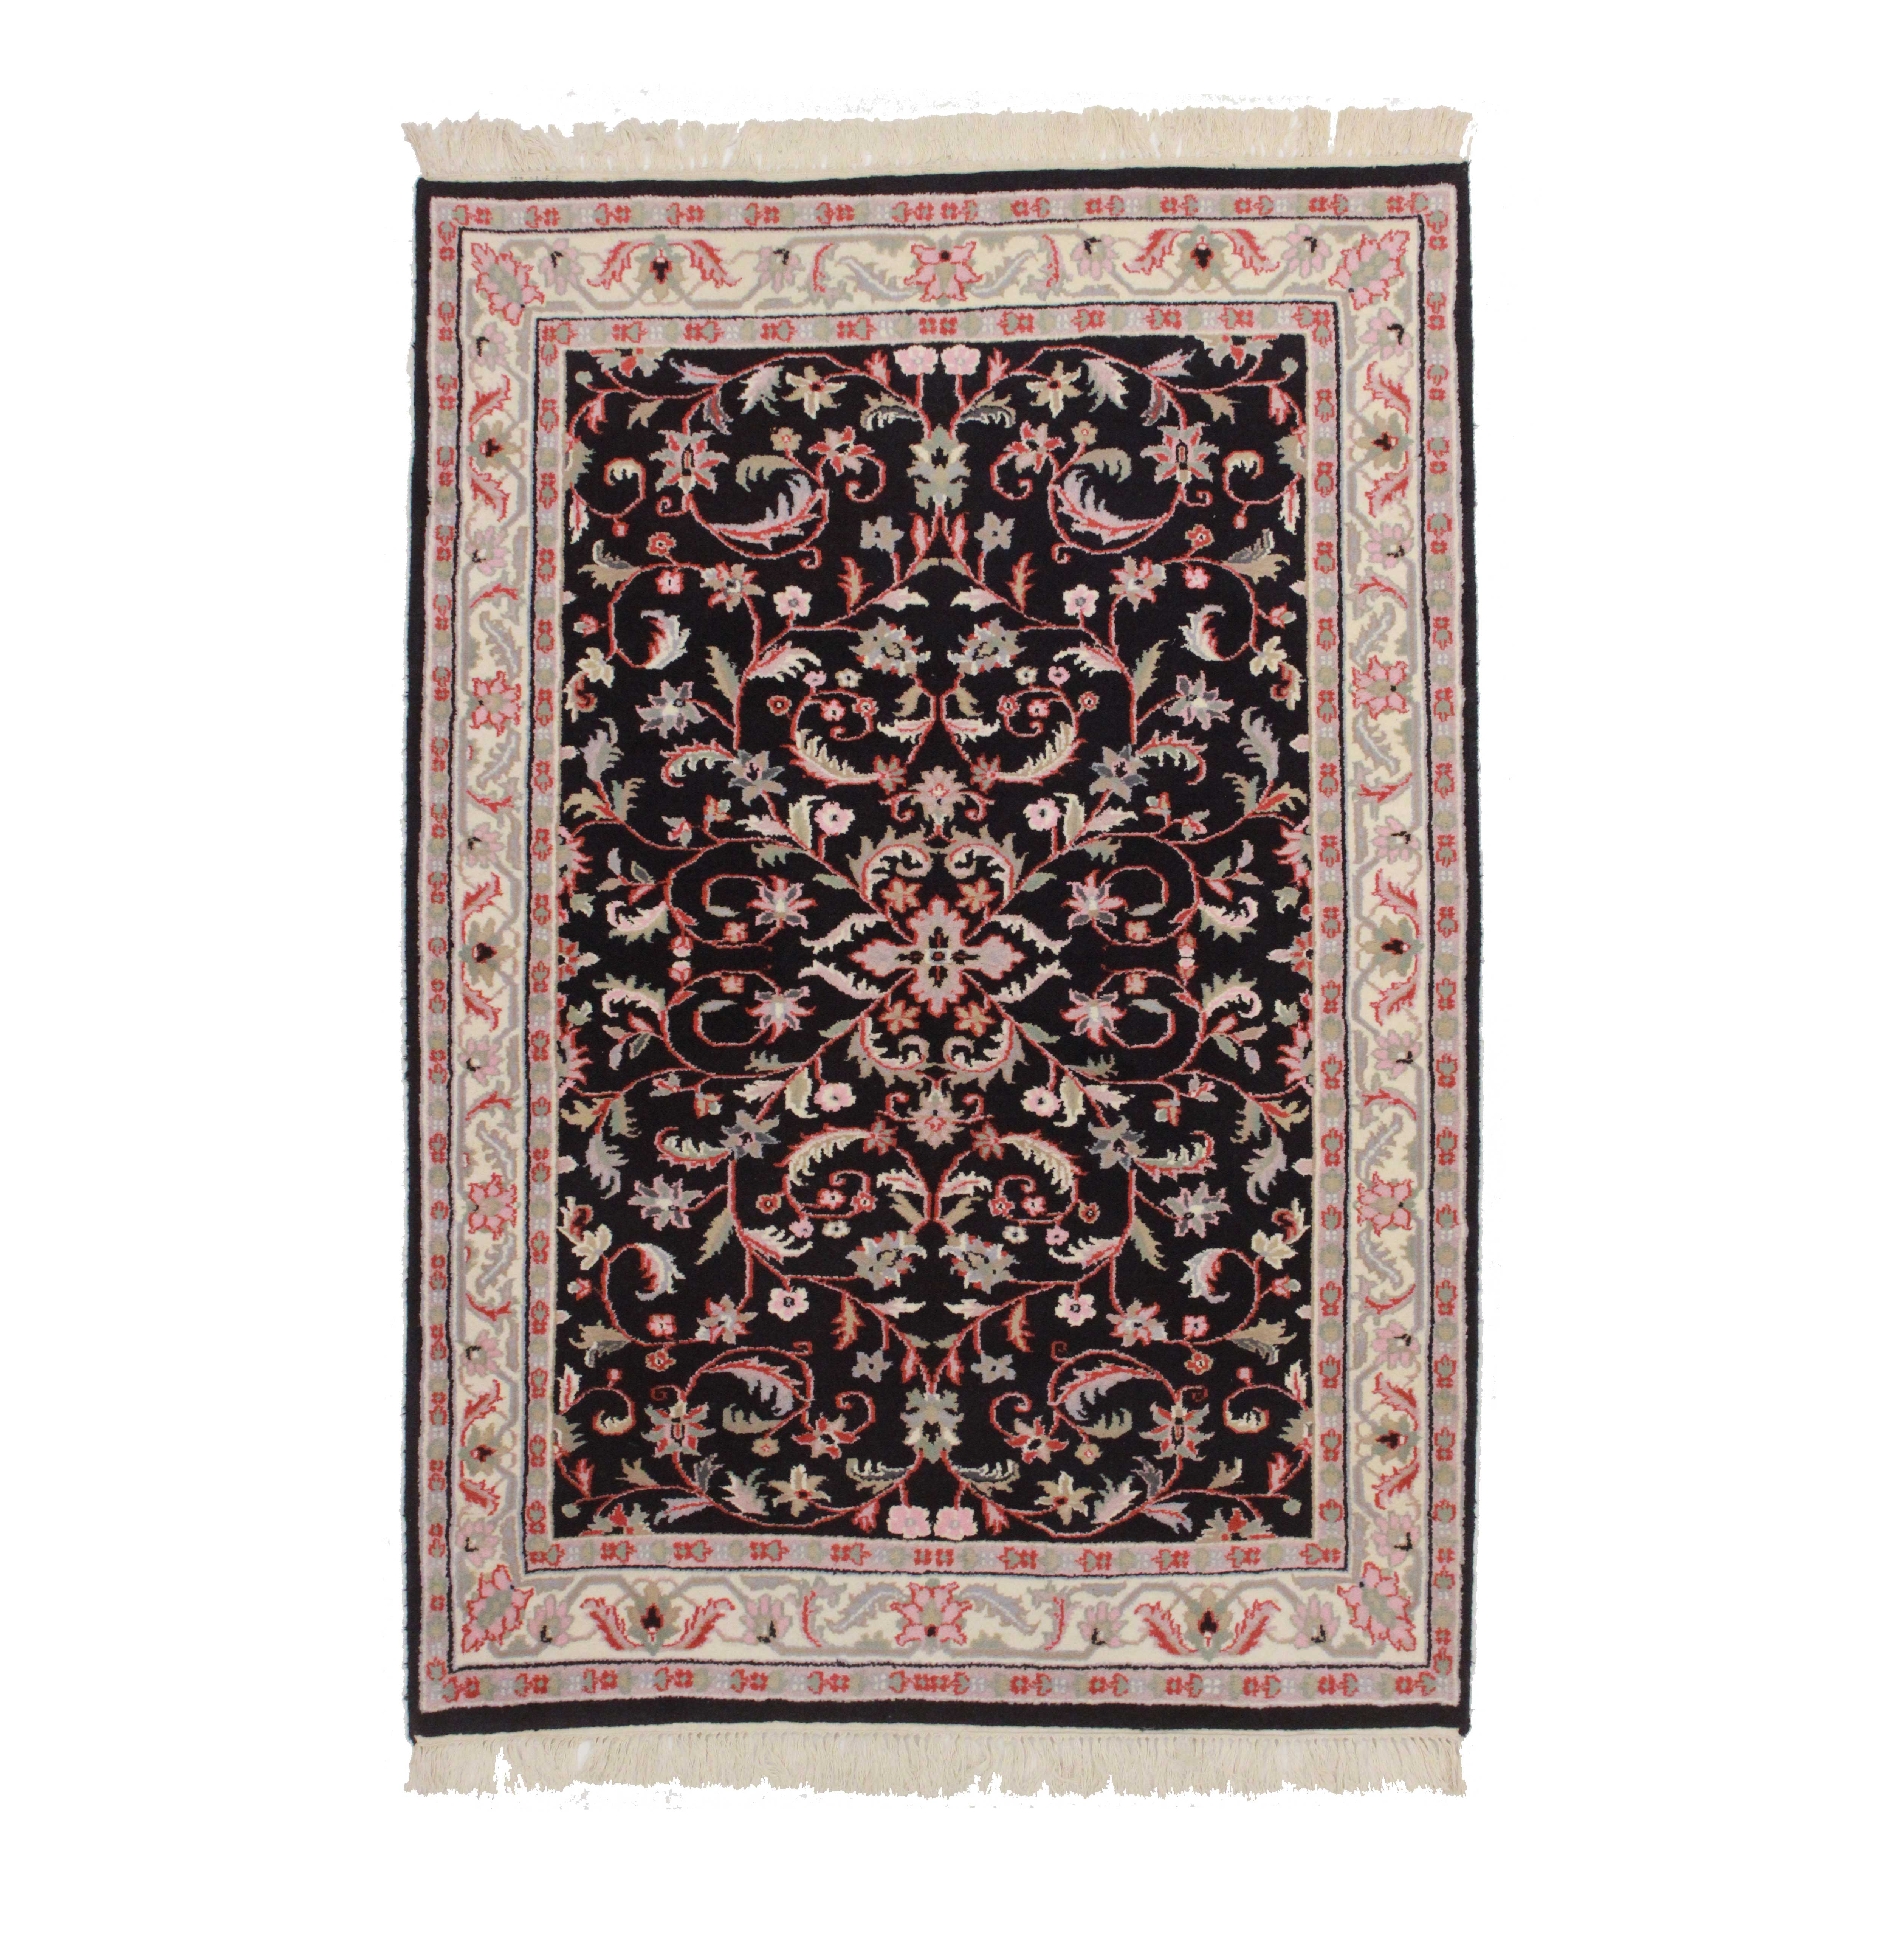 4 x 6 Persian-Style Hand Knotted Wool